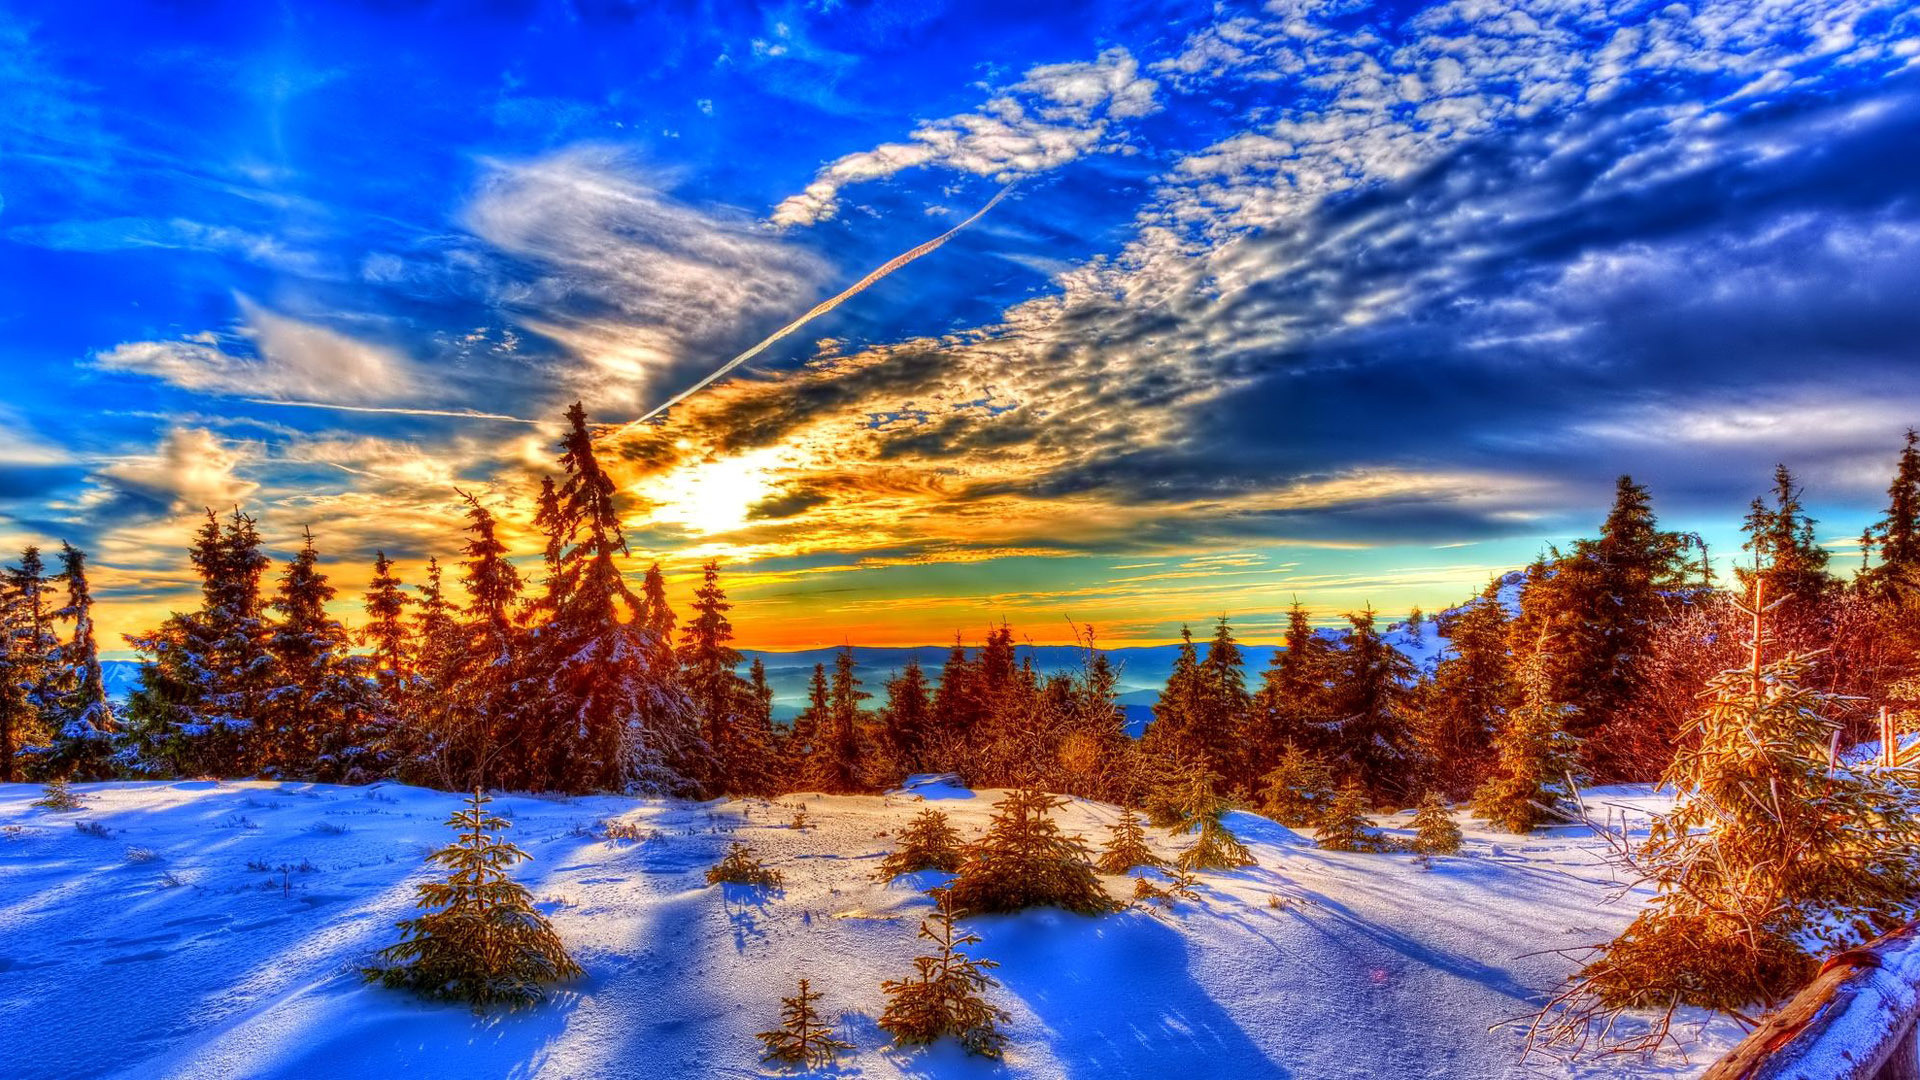 Winter Sunset HD Wallpaper (50+ Images